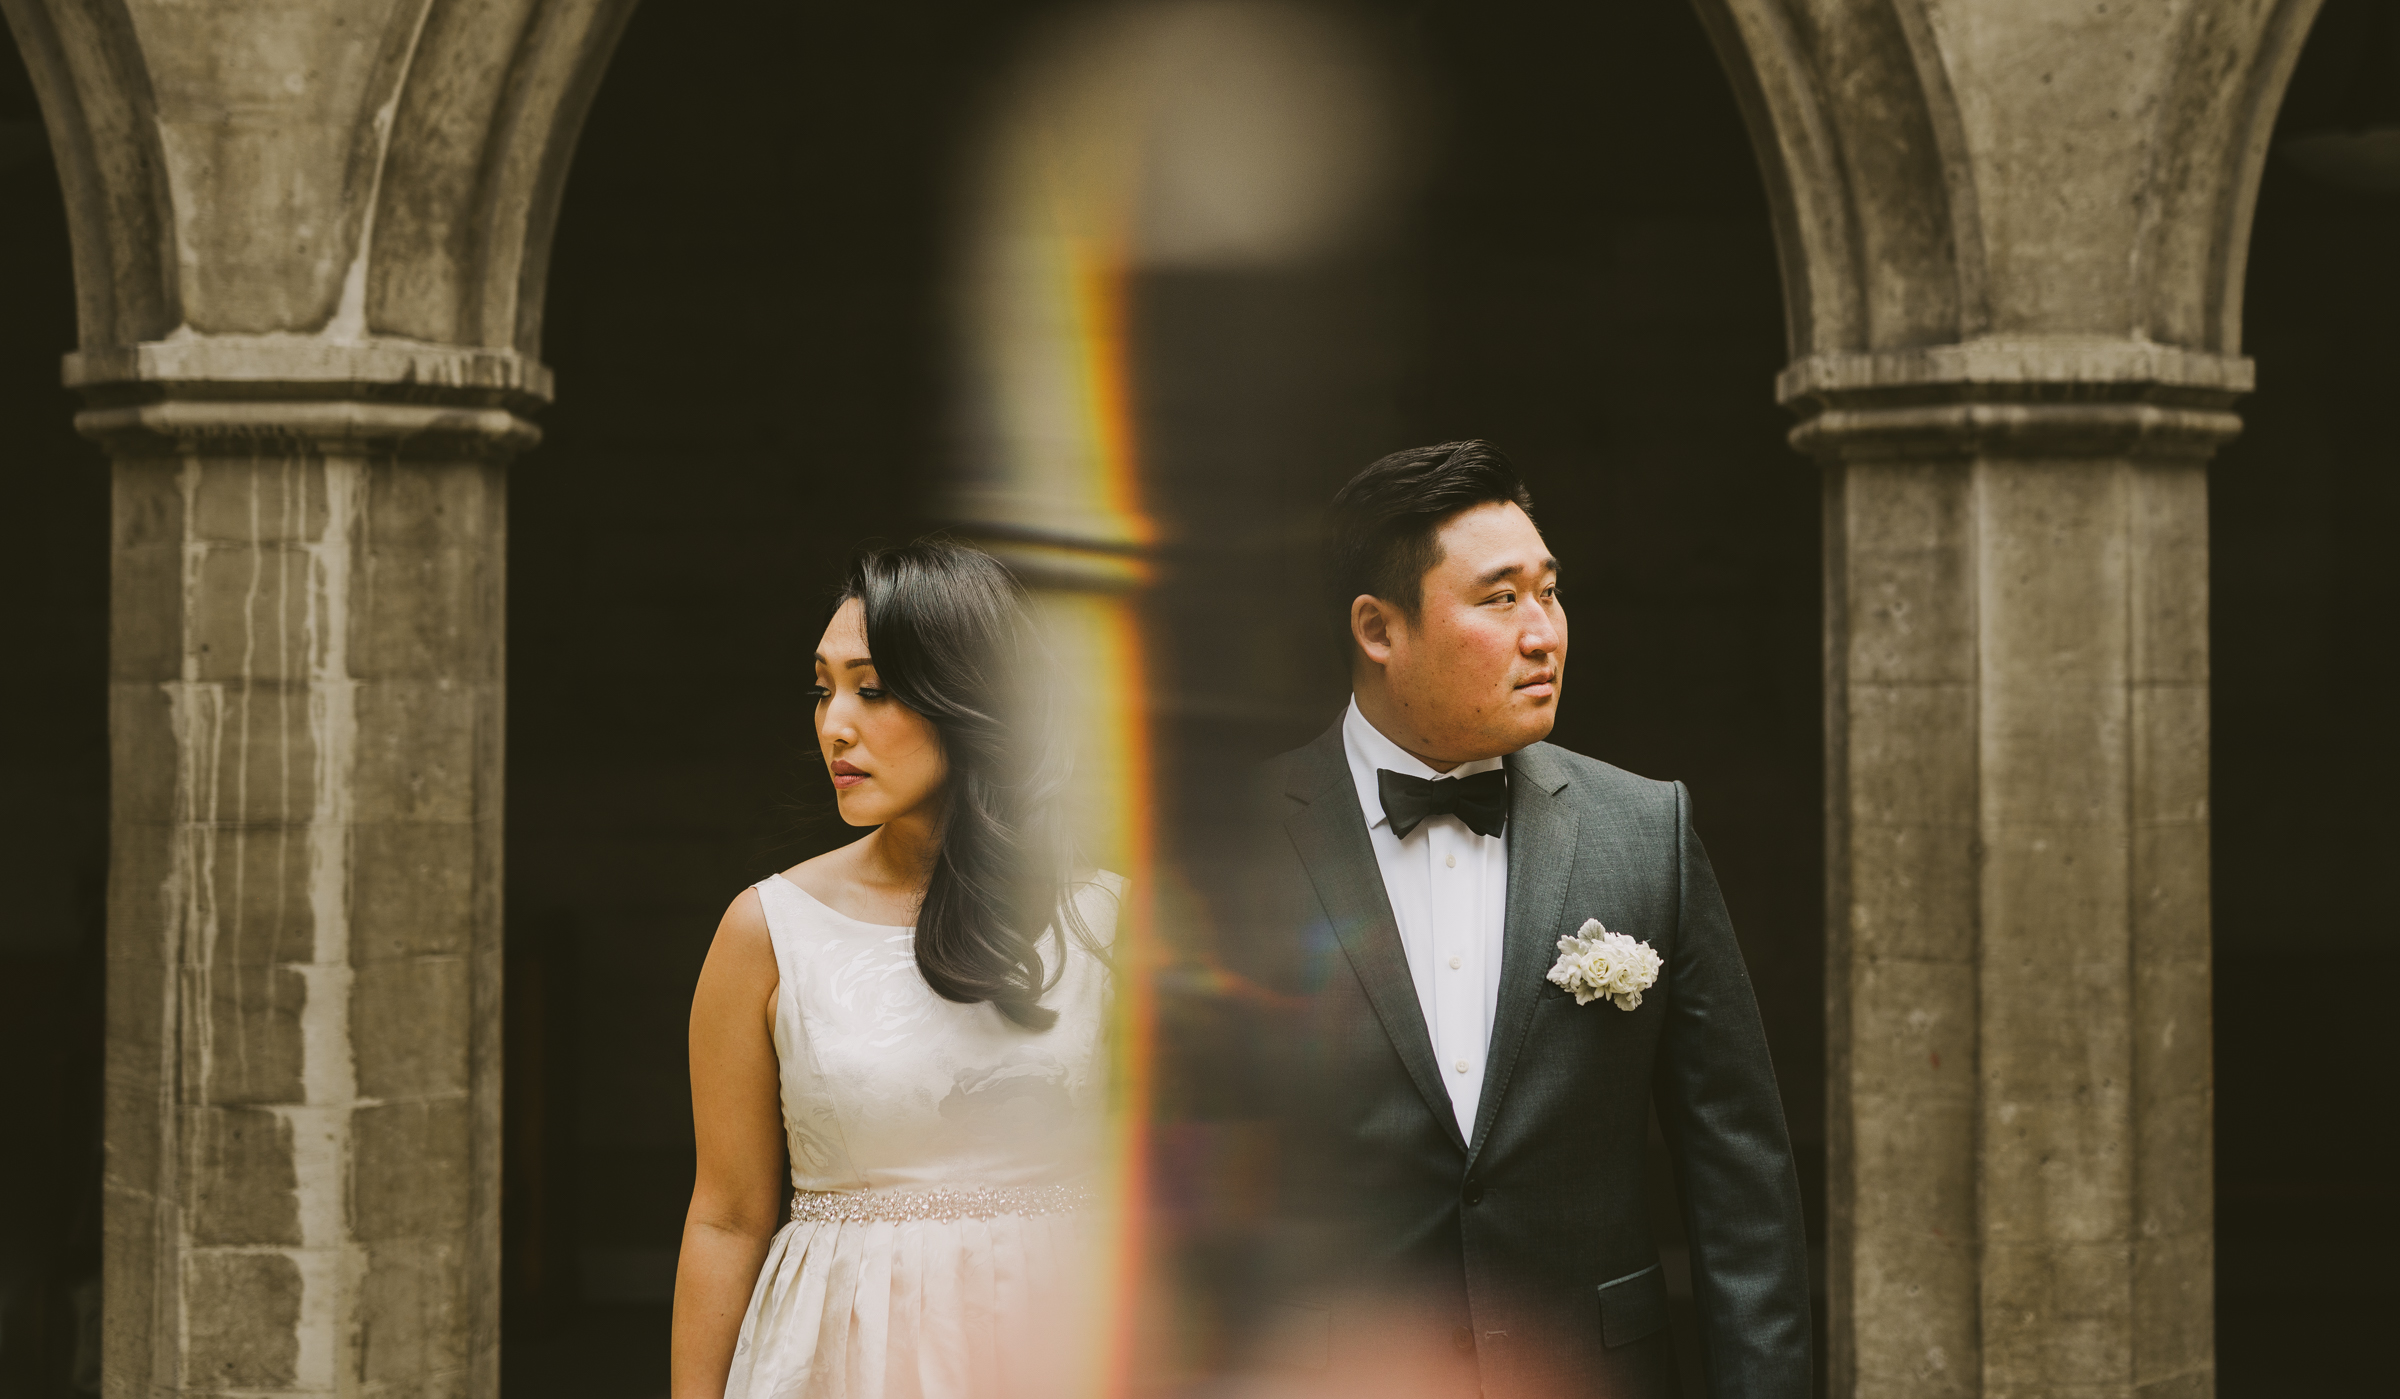 ©Isaiah + Taylor Photography - David + Grace - Wedding - 20170115 03915.jpg